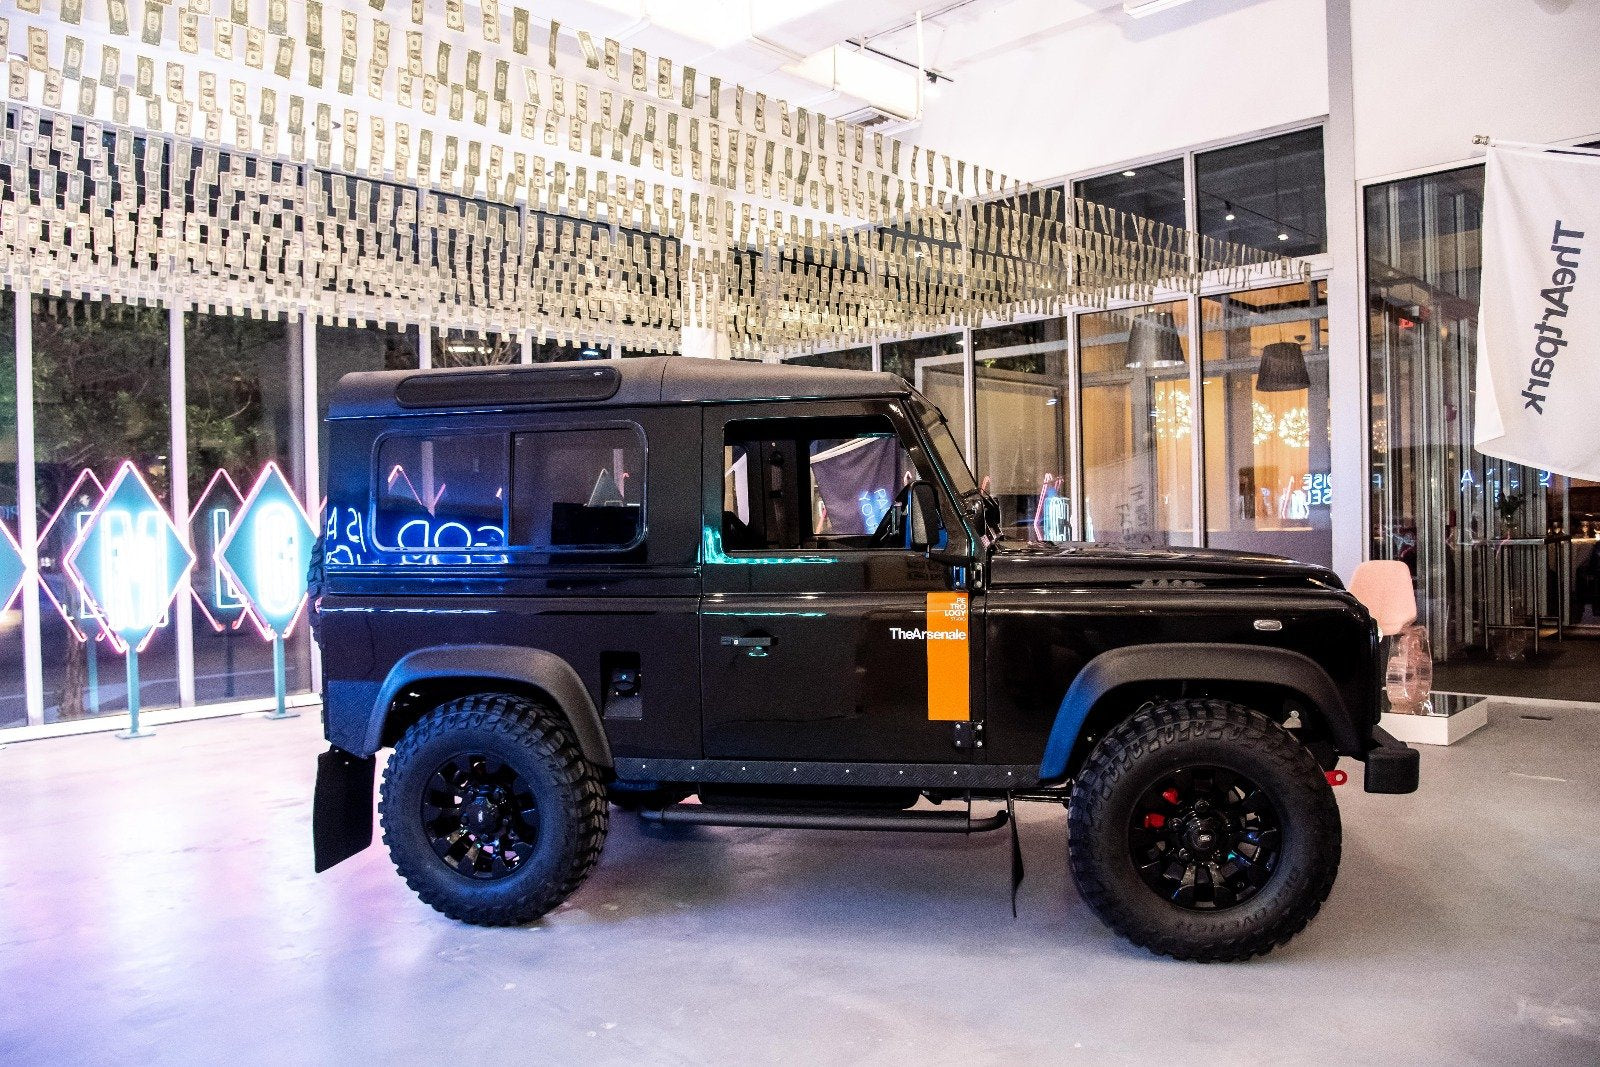 Petrology x TheArsenale Land Rover Defender 90